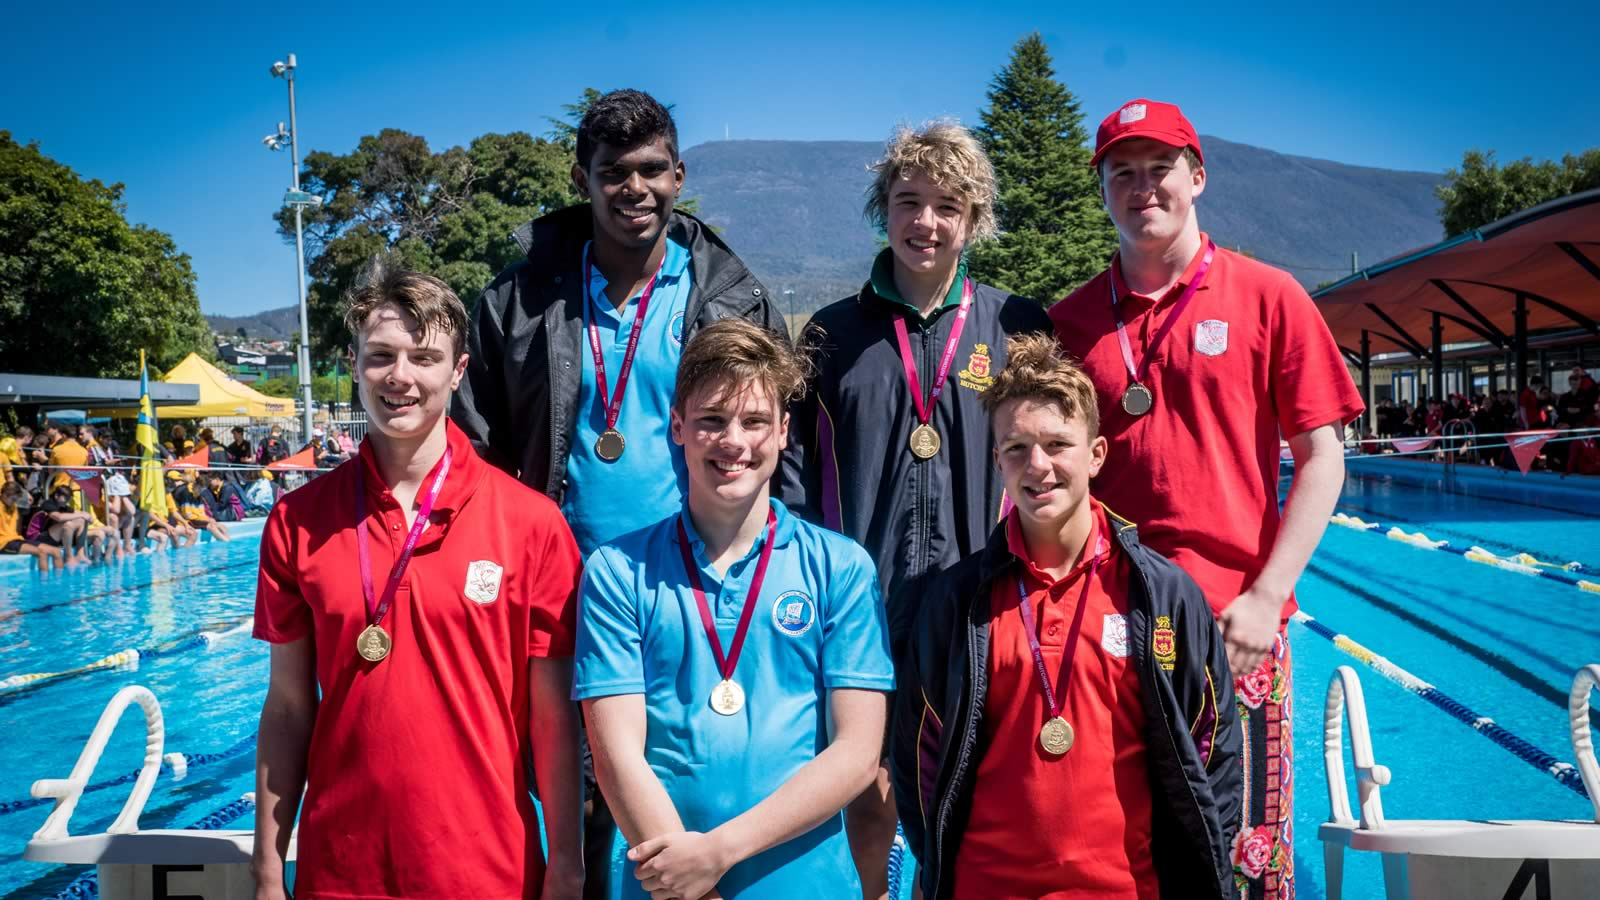 Age group champions William Lickiss, Sembeyan Muthu, Saxon Wright, Liam Duffy, Noah Kamprad and Simon Watt